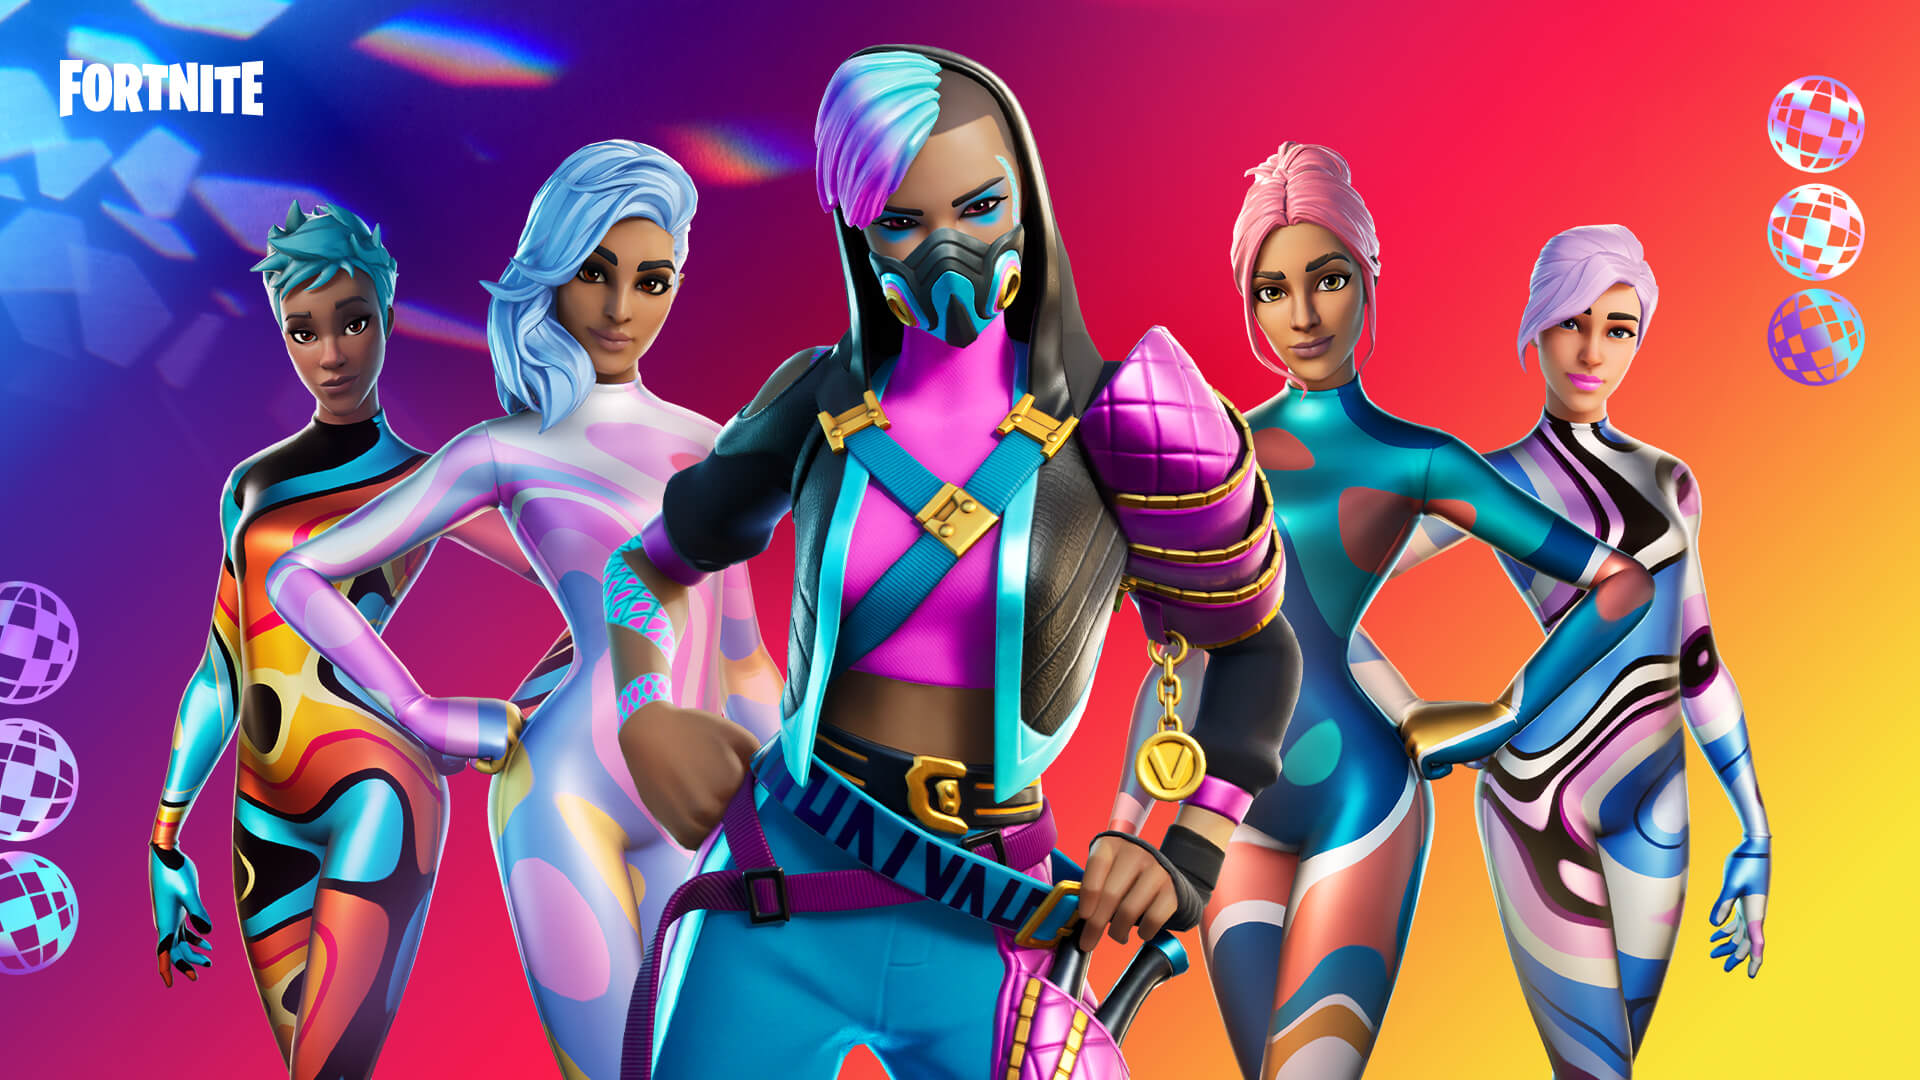 Fortnite Party Outfits